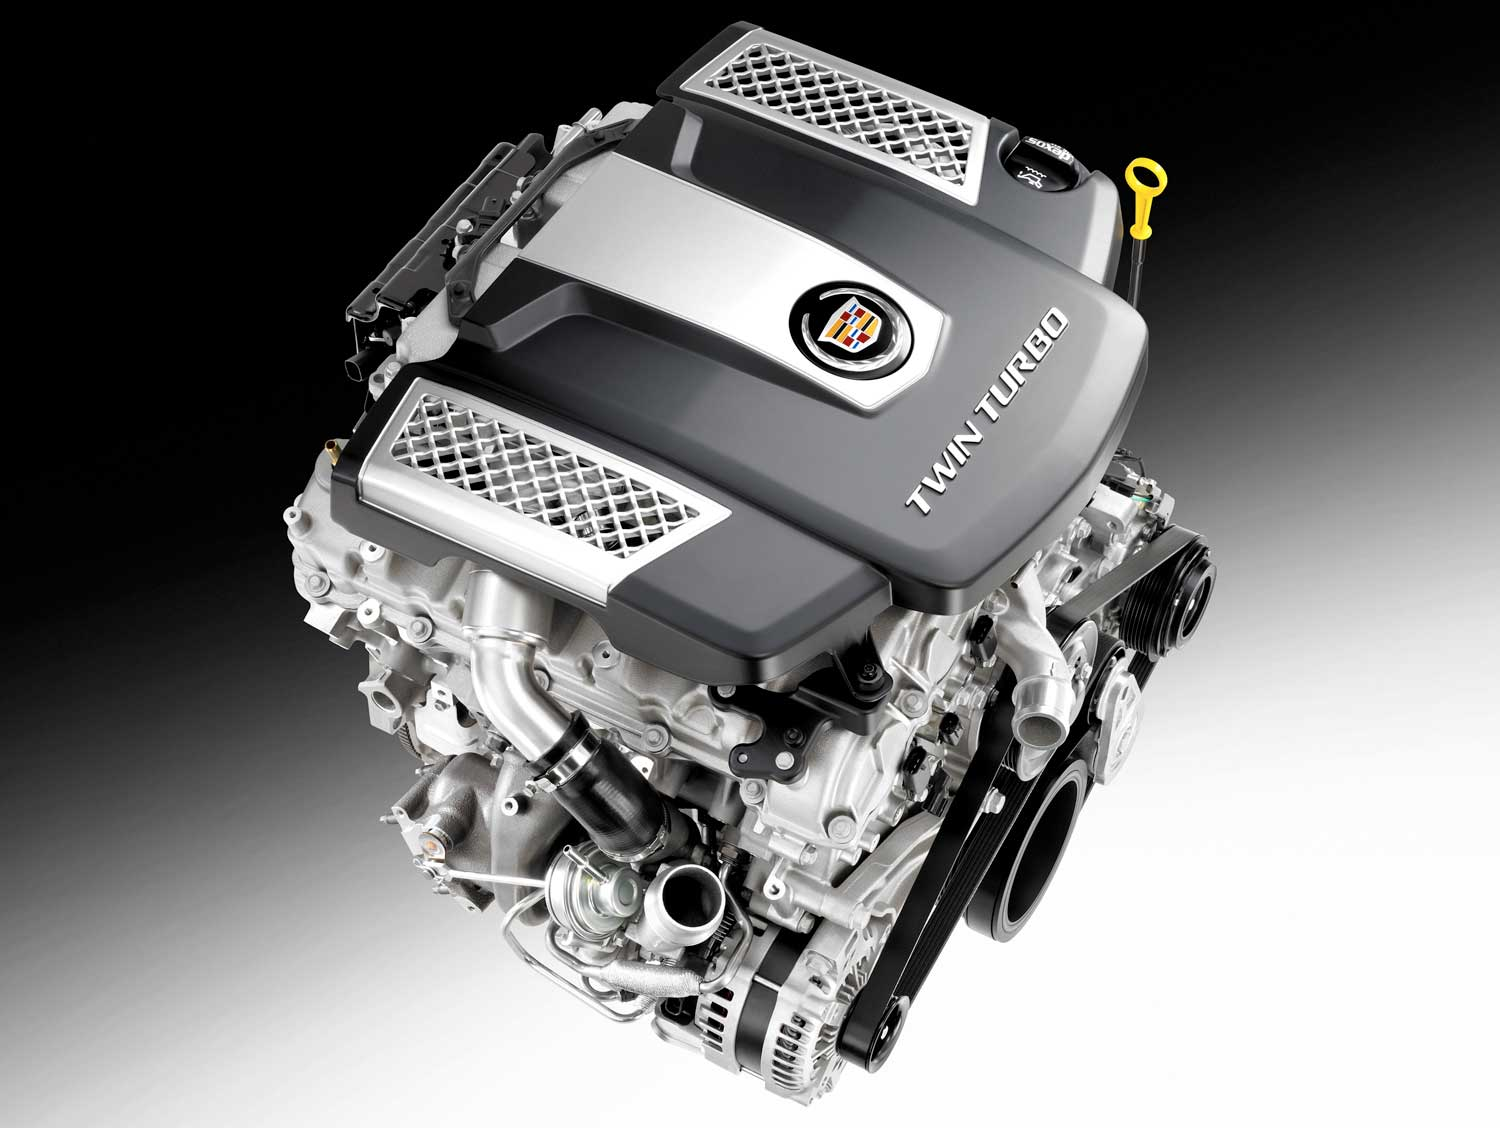 Cadillac 3 6 V6 Engine Diagram Wiring Of Gm Adds Twin Turbo V To New Ctscadillac 12